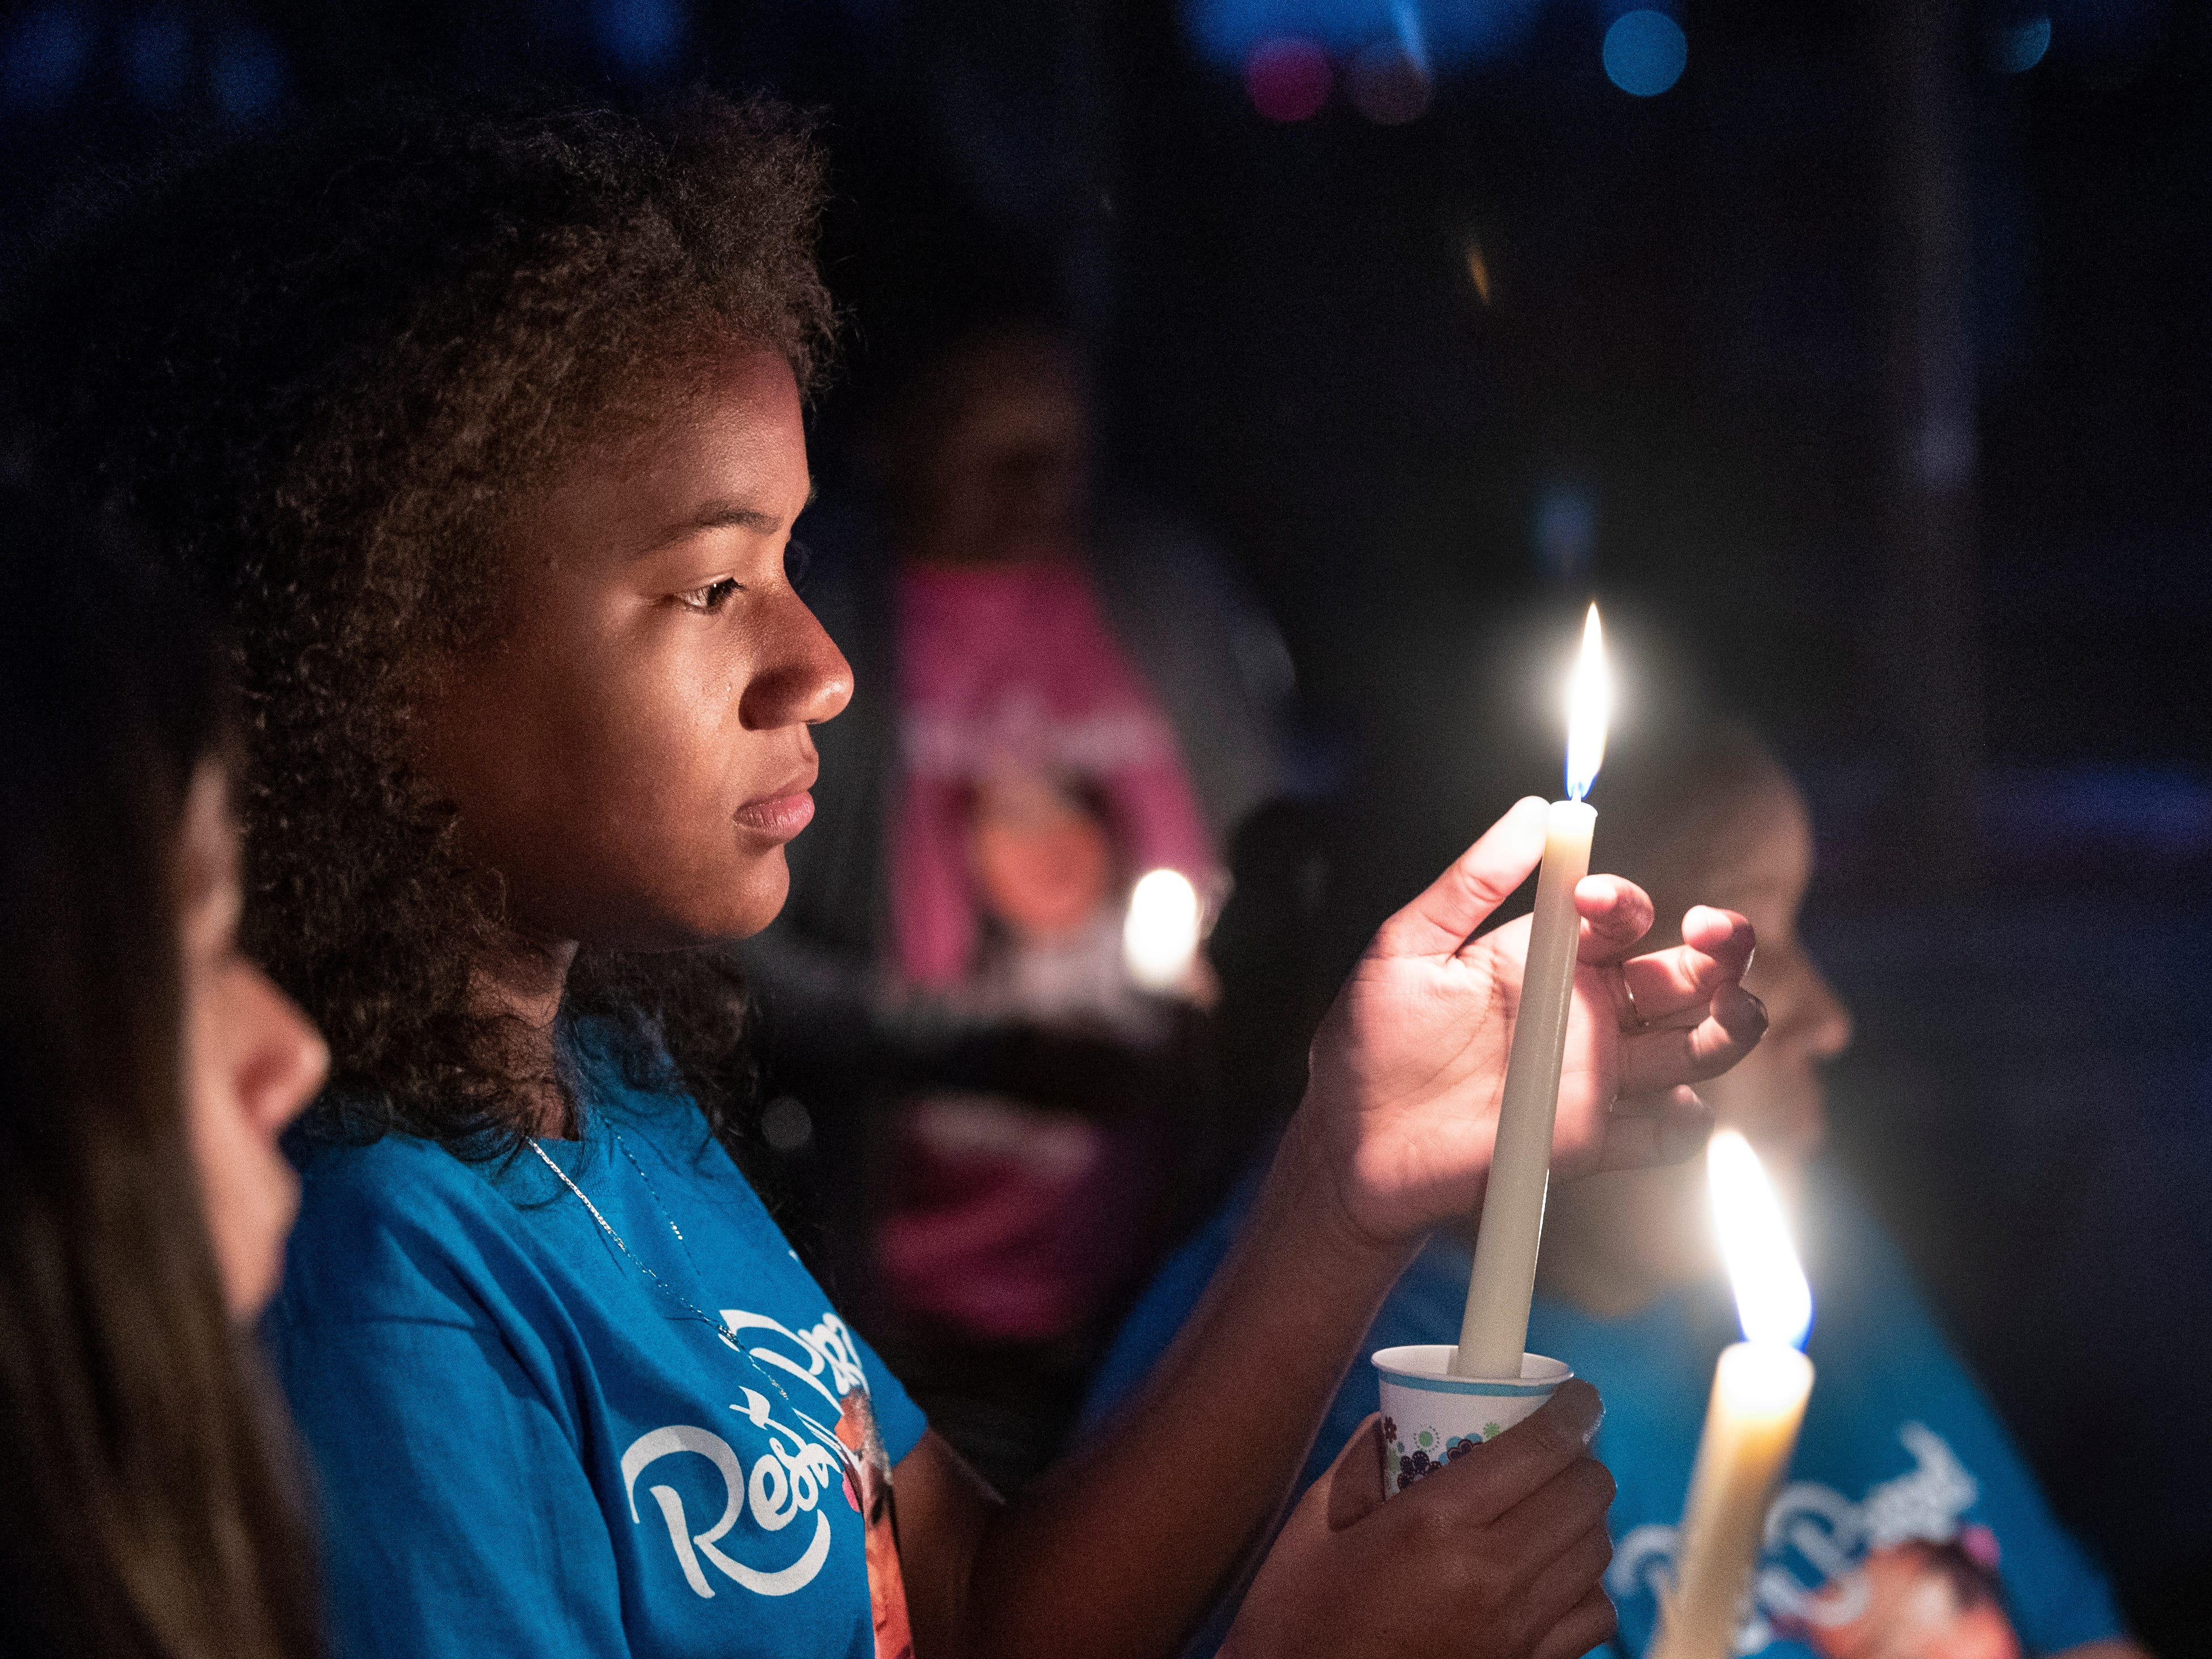 De'Ajah Hicks, 11, pauses with family and friends of her cousin Dynasty Alexander gathered at Elk Bayou Regional Park on Saturday, March 16, 2019. Birthday cake, a balloon release and a candle light vigil were offered in her memory. Alexander's body was found in an orchard outside of the city on March 3. She had been strangled and shot.